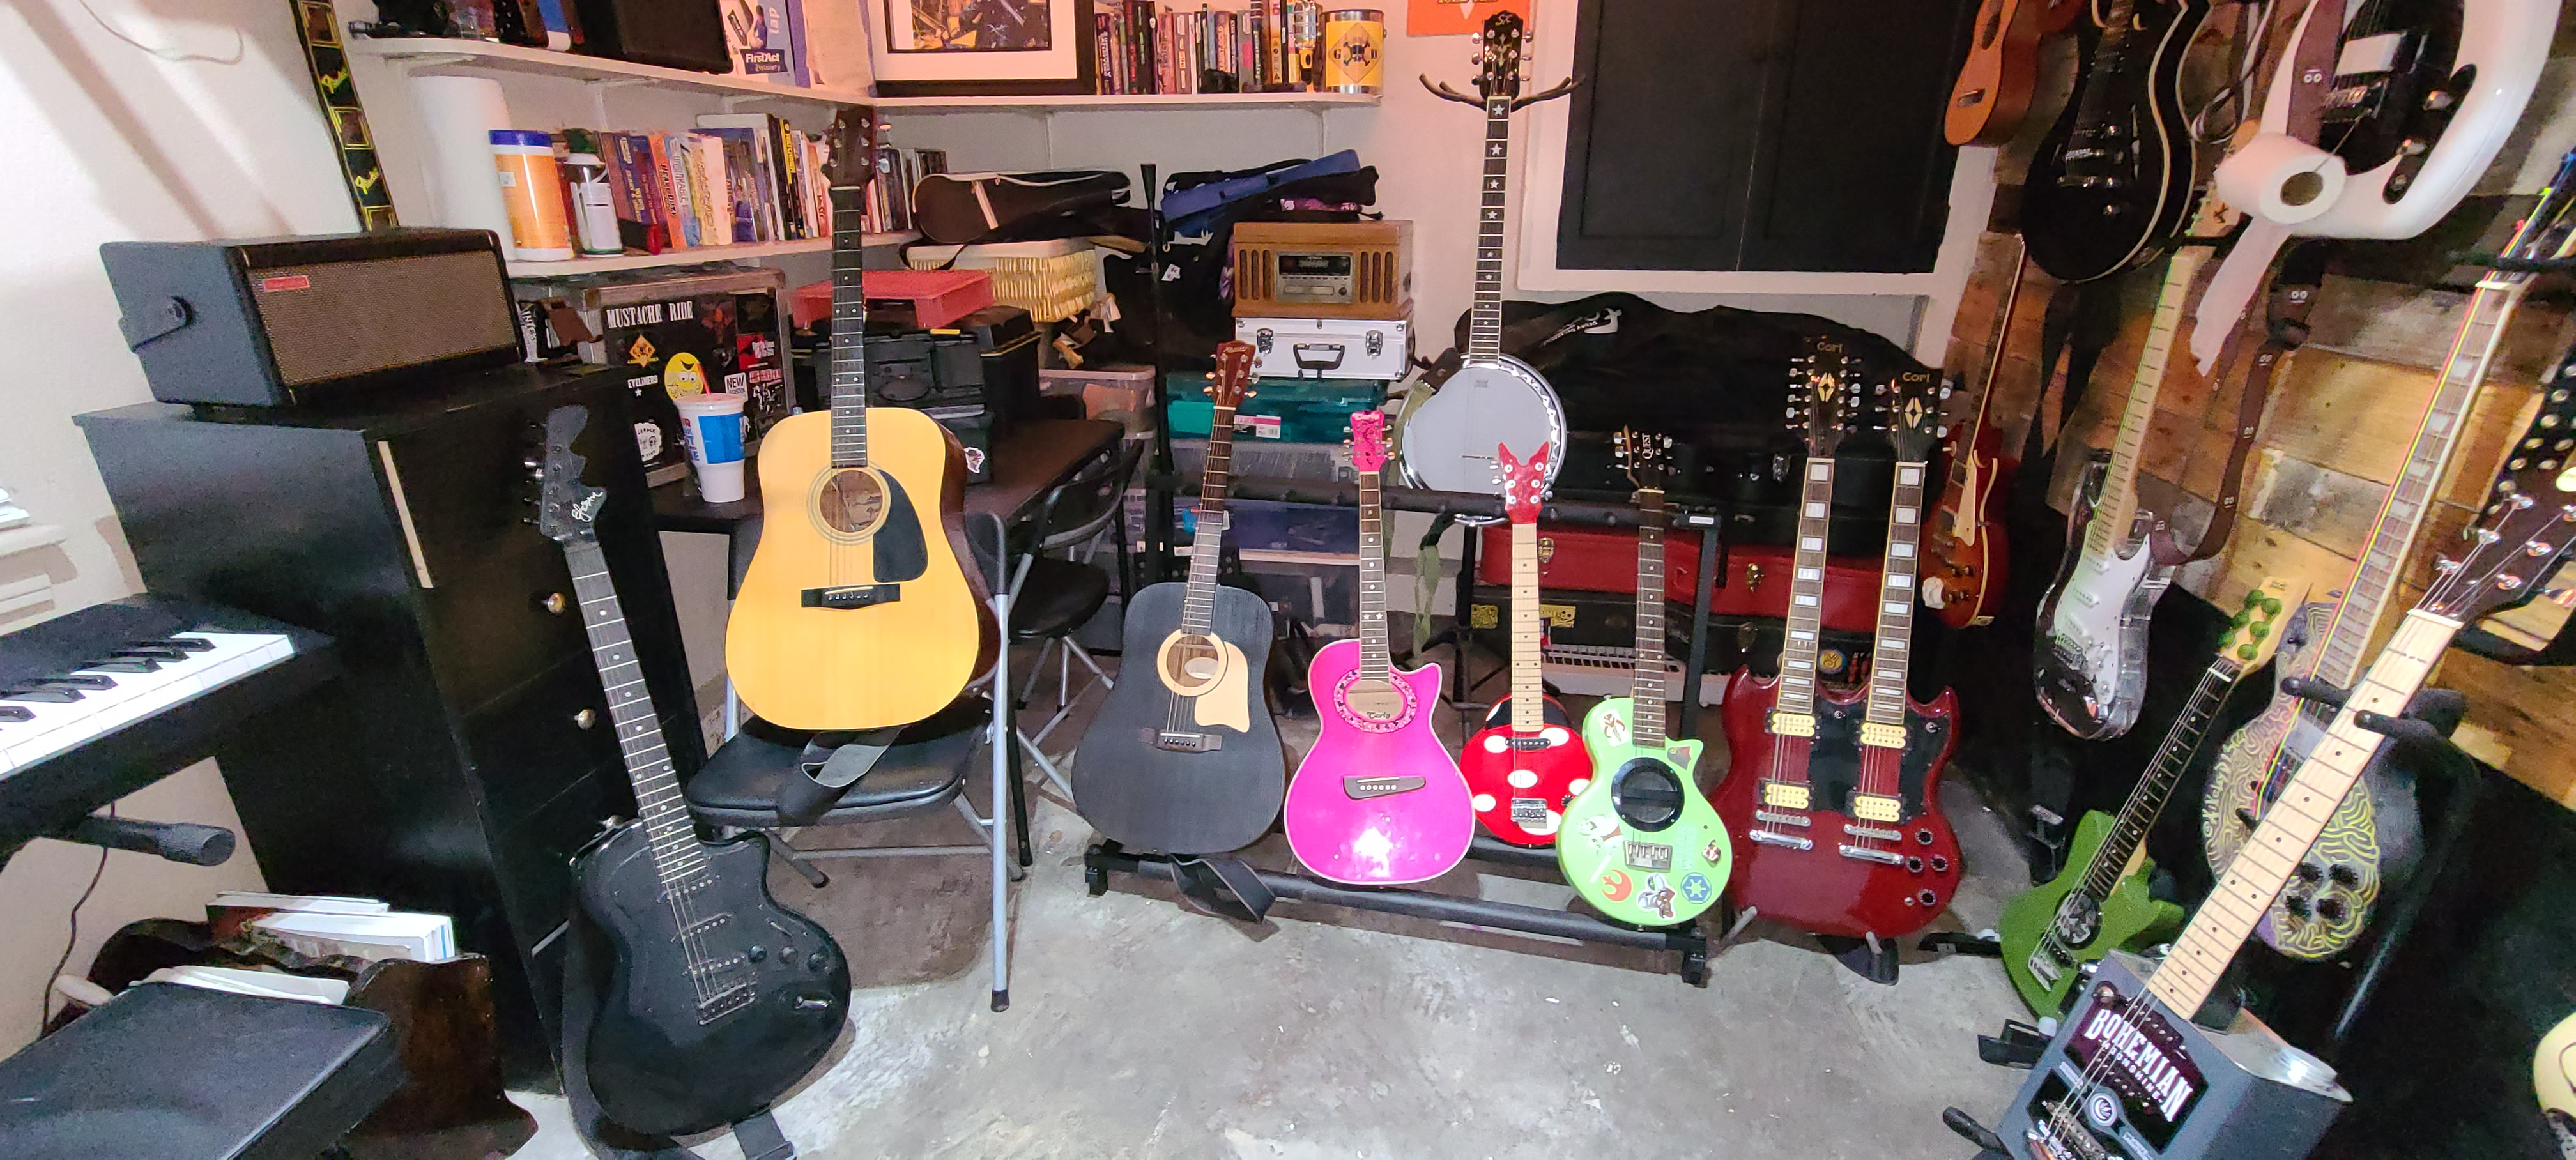 AiXeLsyD13's guitars - I ran out of walls.